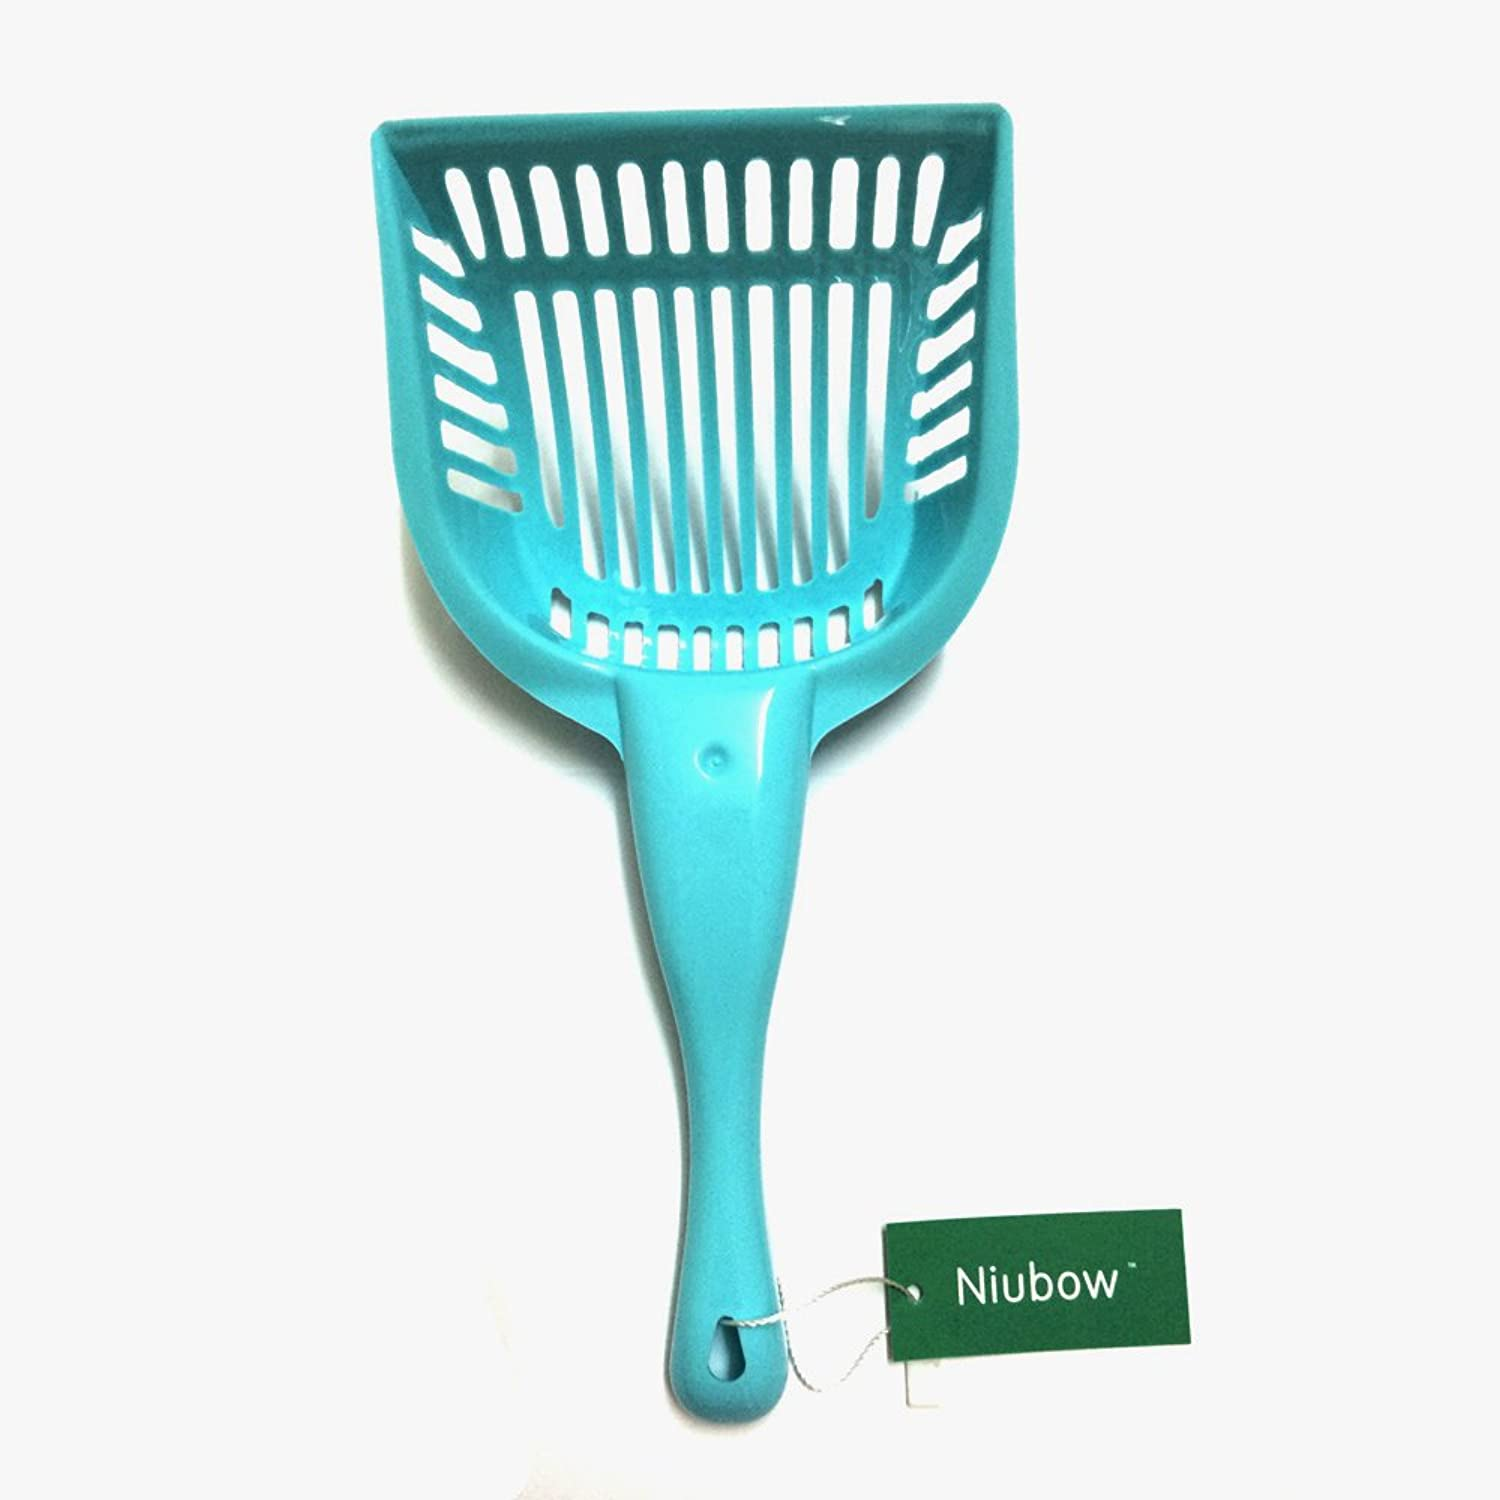 Niubow Cat Litter Scoop with Long Handle, Keeps Litter Box Area Clean of Mess (bluee)